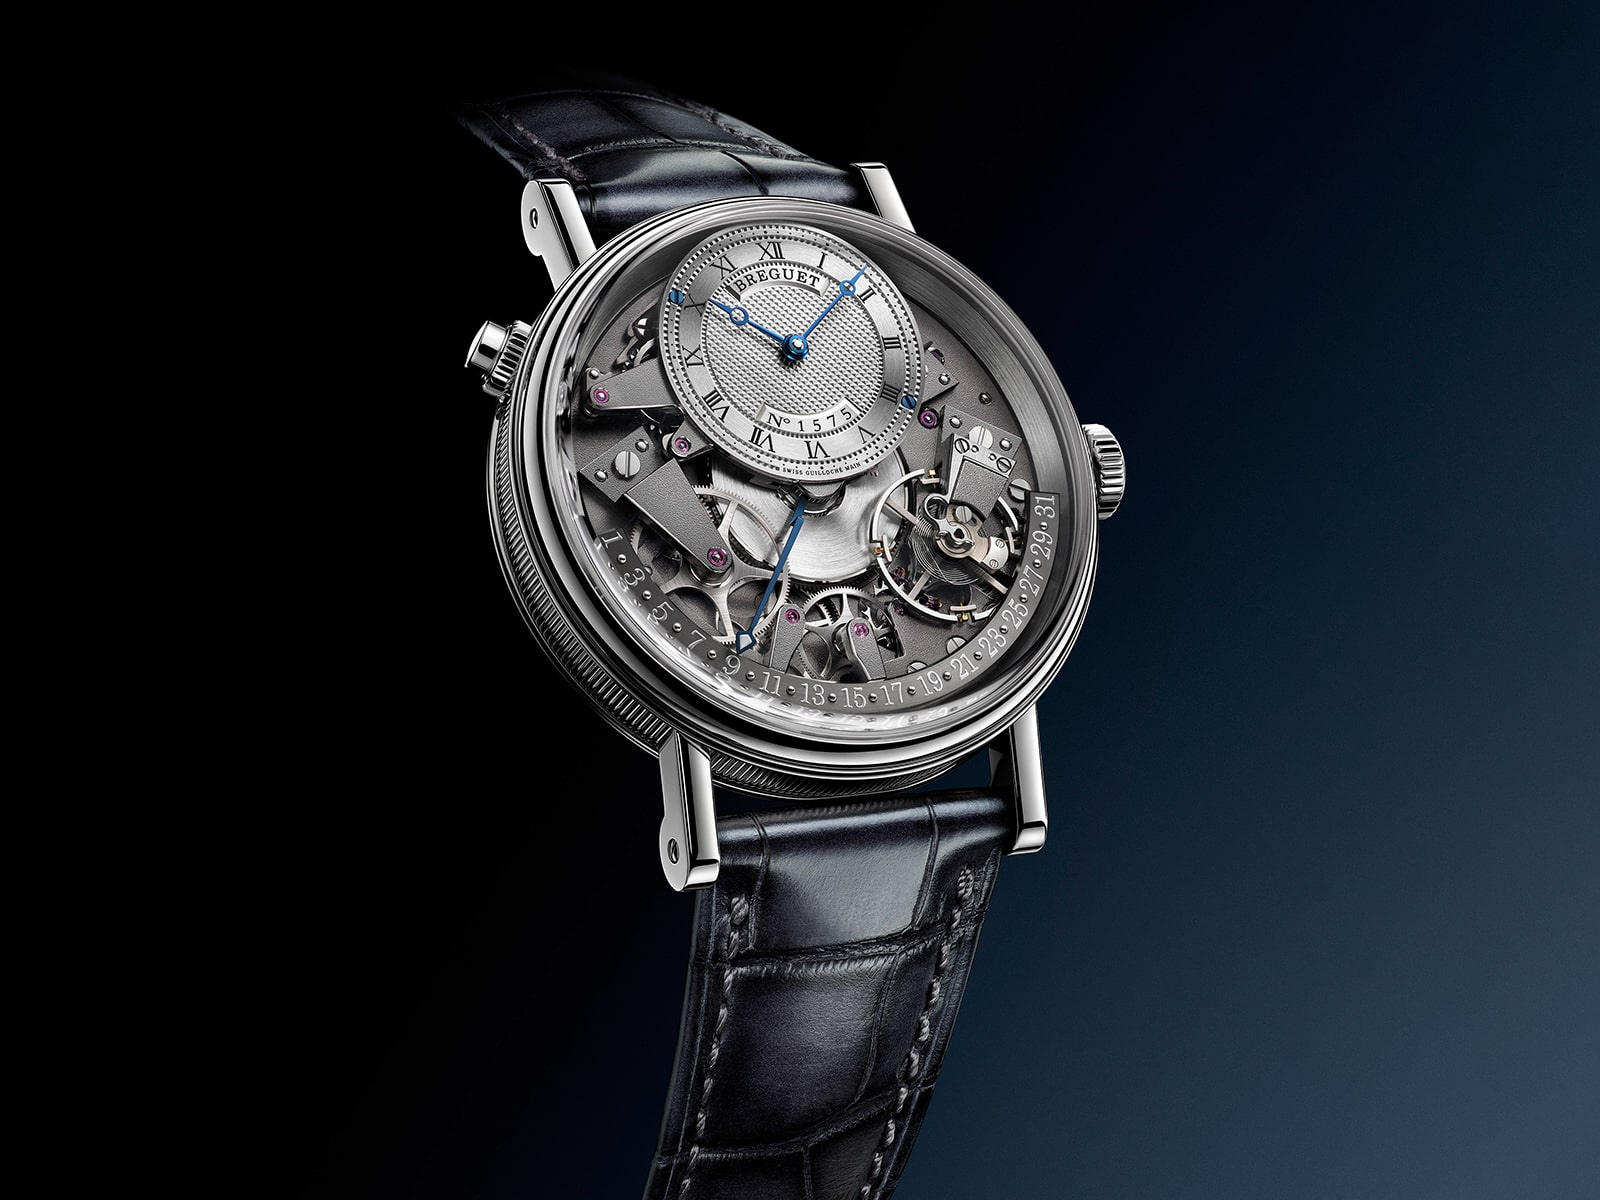 7597bb-g1-9wu-breguet-tradition-quantieme-retrograde-7597-white-gold-5.jpg